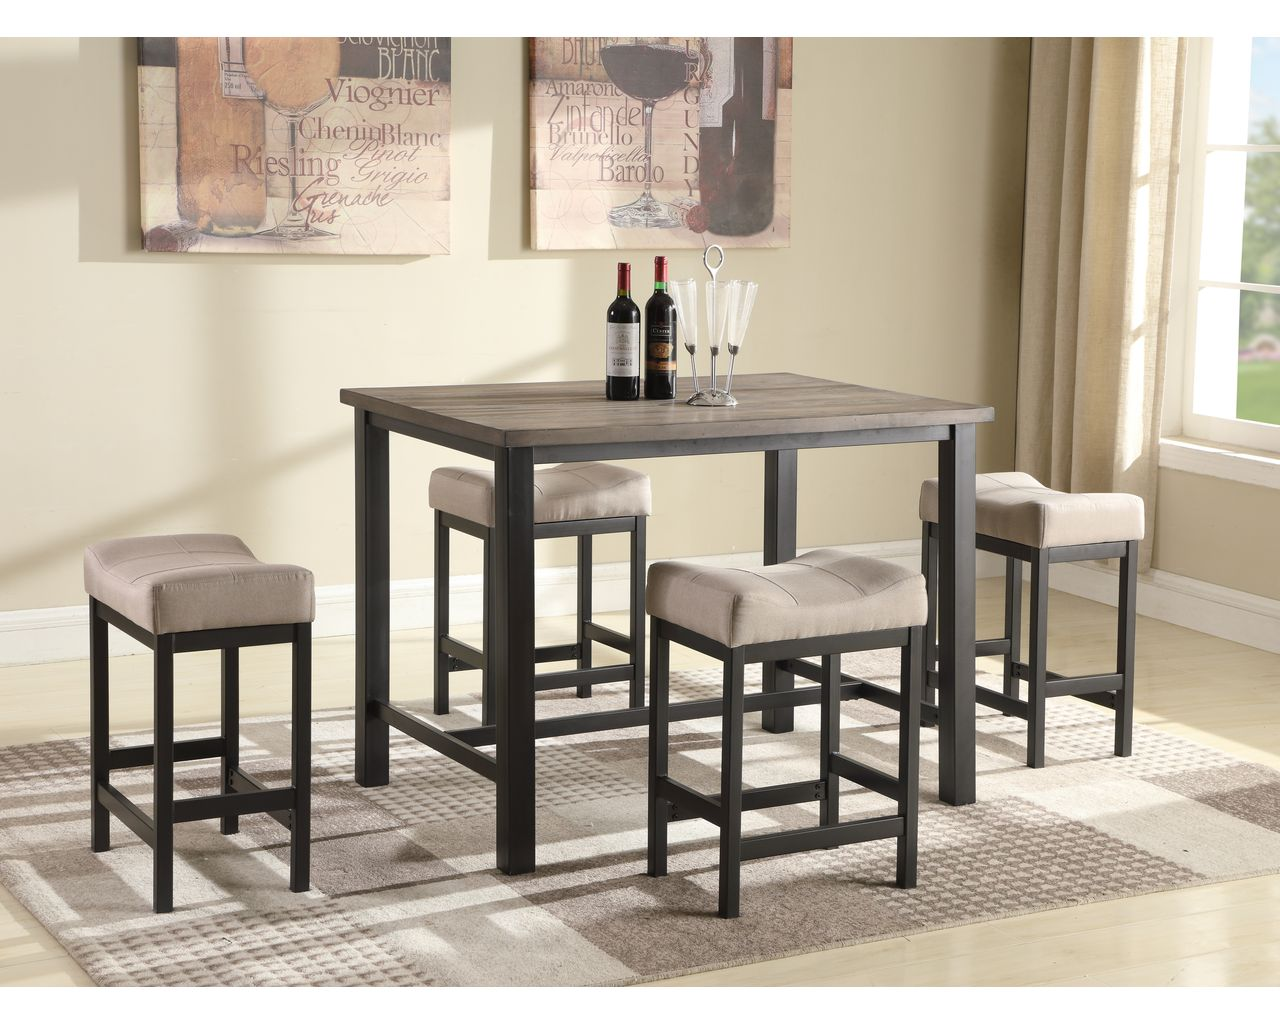 Check out our newest dining sets now available and ready to go!